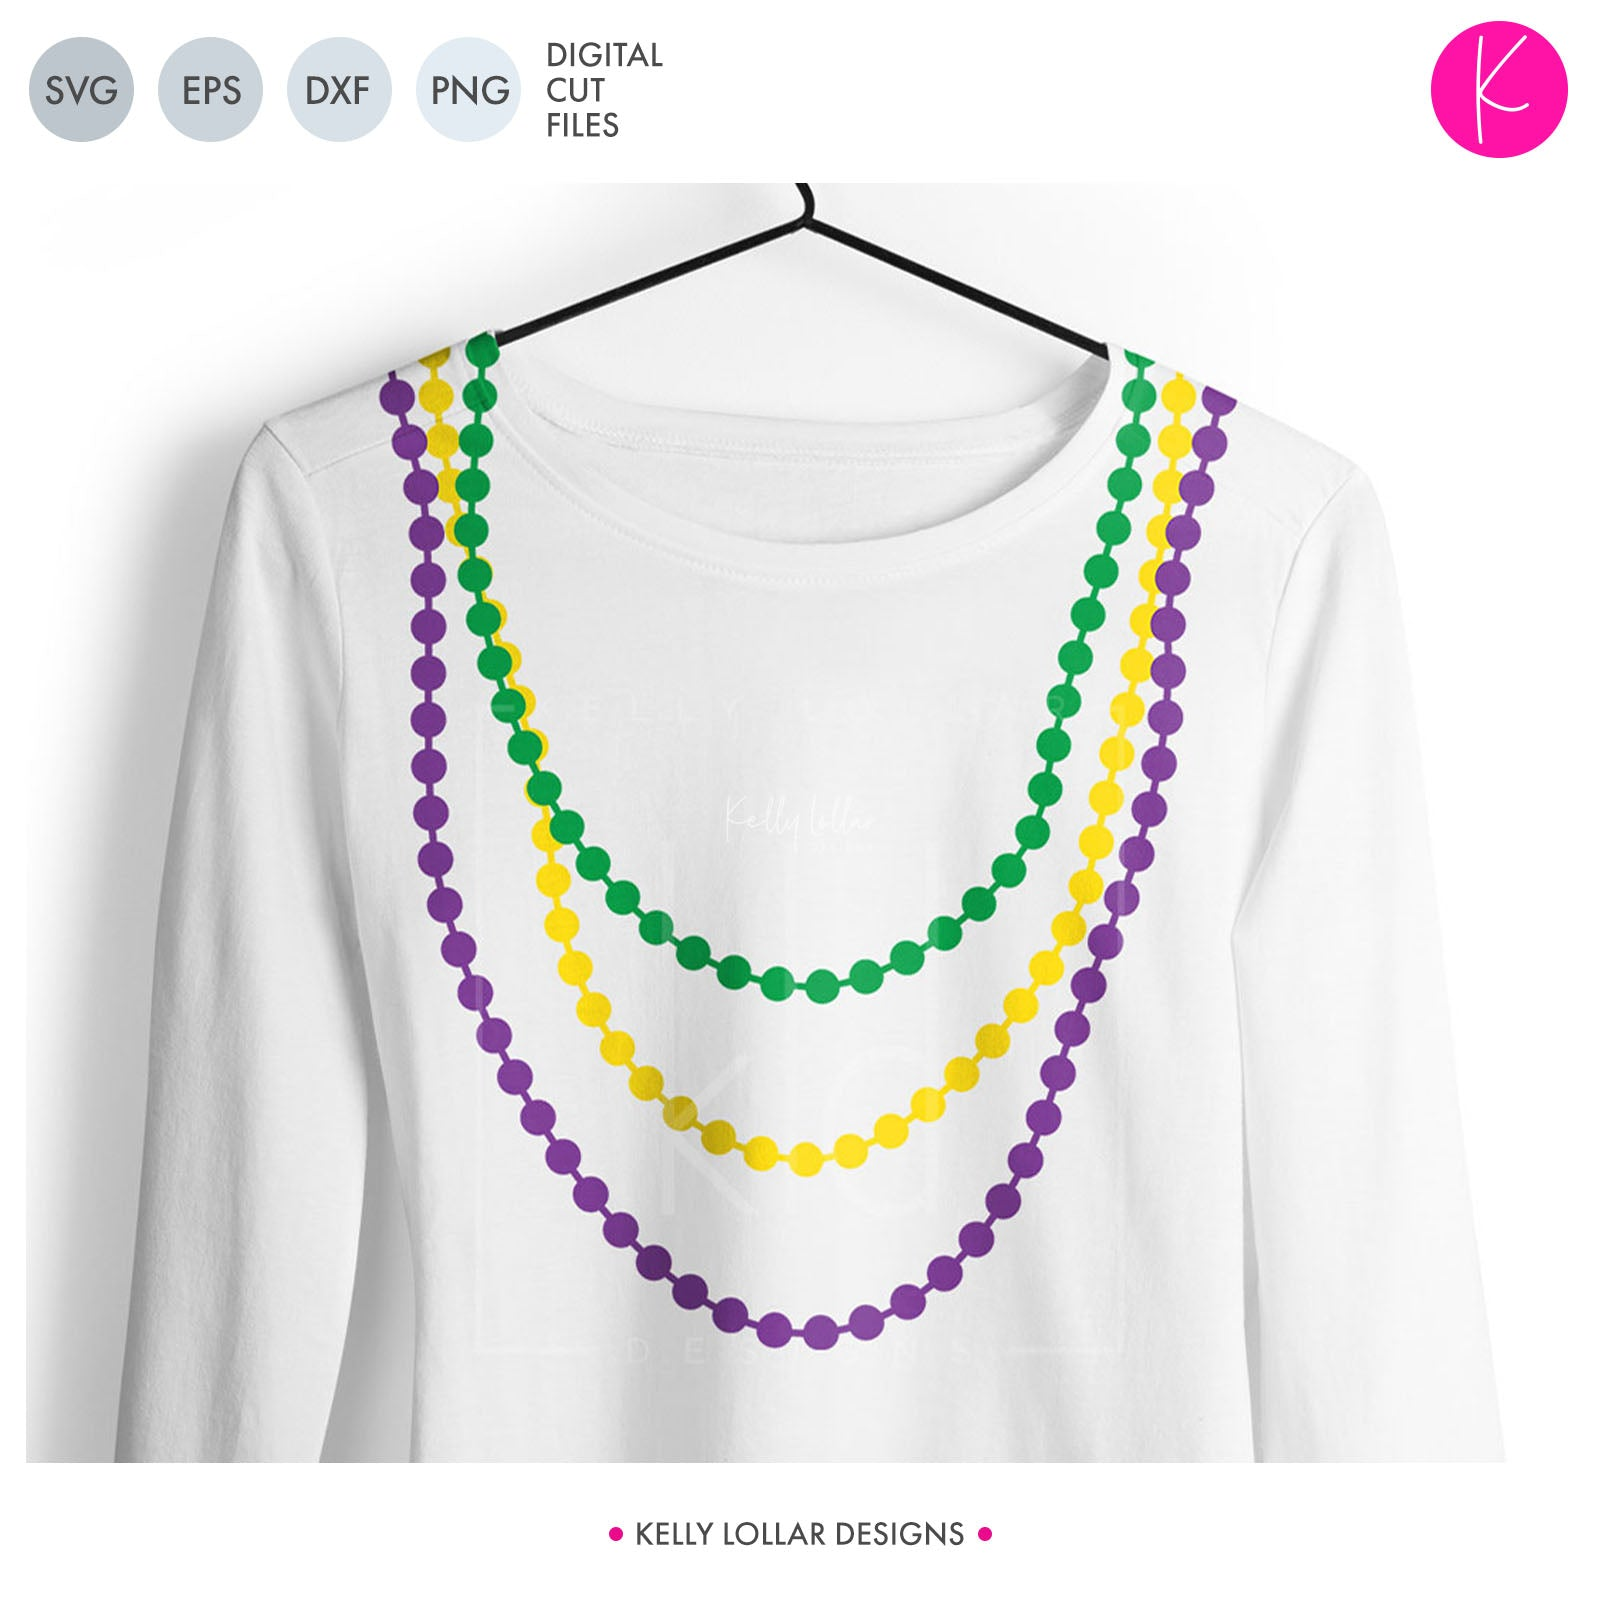 Mardi Gras Beads Pack | SVG DXF EPS PNG Cut Files Five Styles of Beads Each in 3 Lengths (30 total) for Mardi Gras Shirts, Decals and Decor | SVG DXF PNG Cut Files 10 files for each format 5 styles